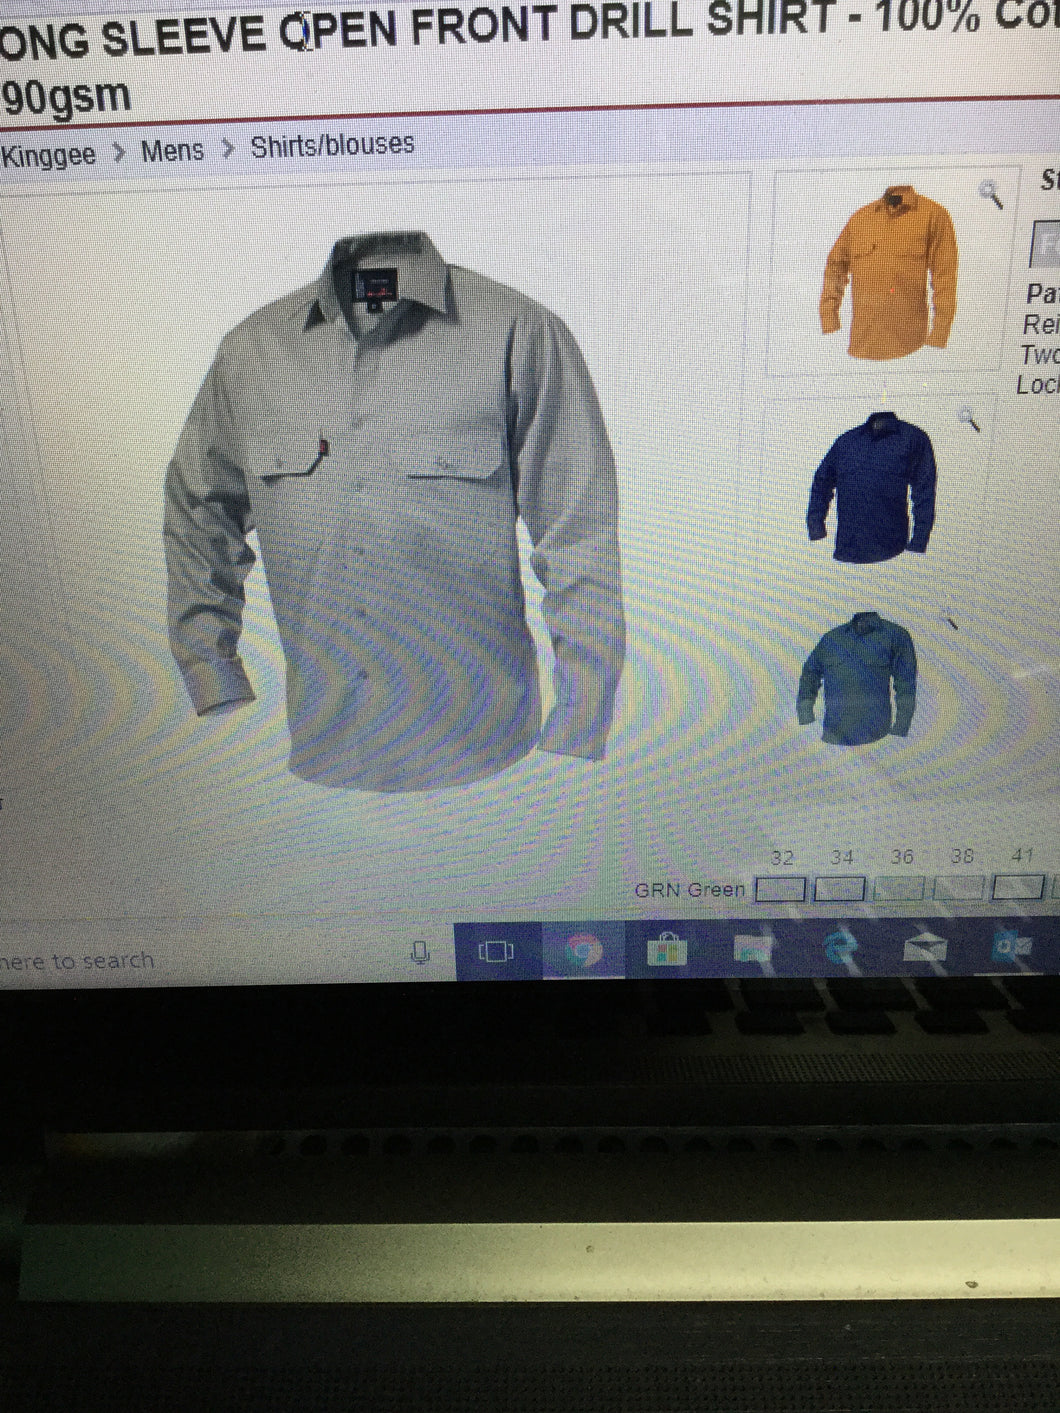 L/S Cotton Open Front Drill Shirt